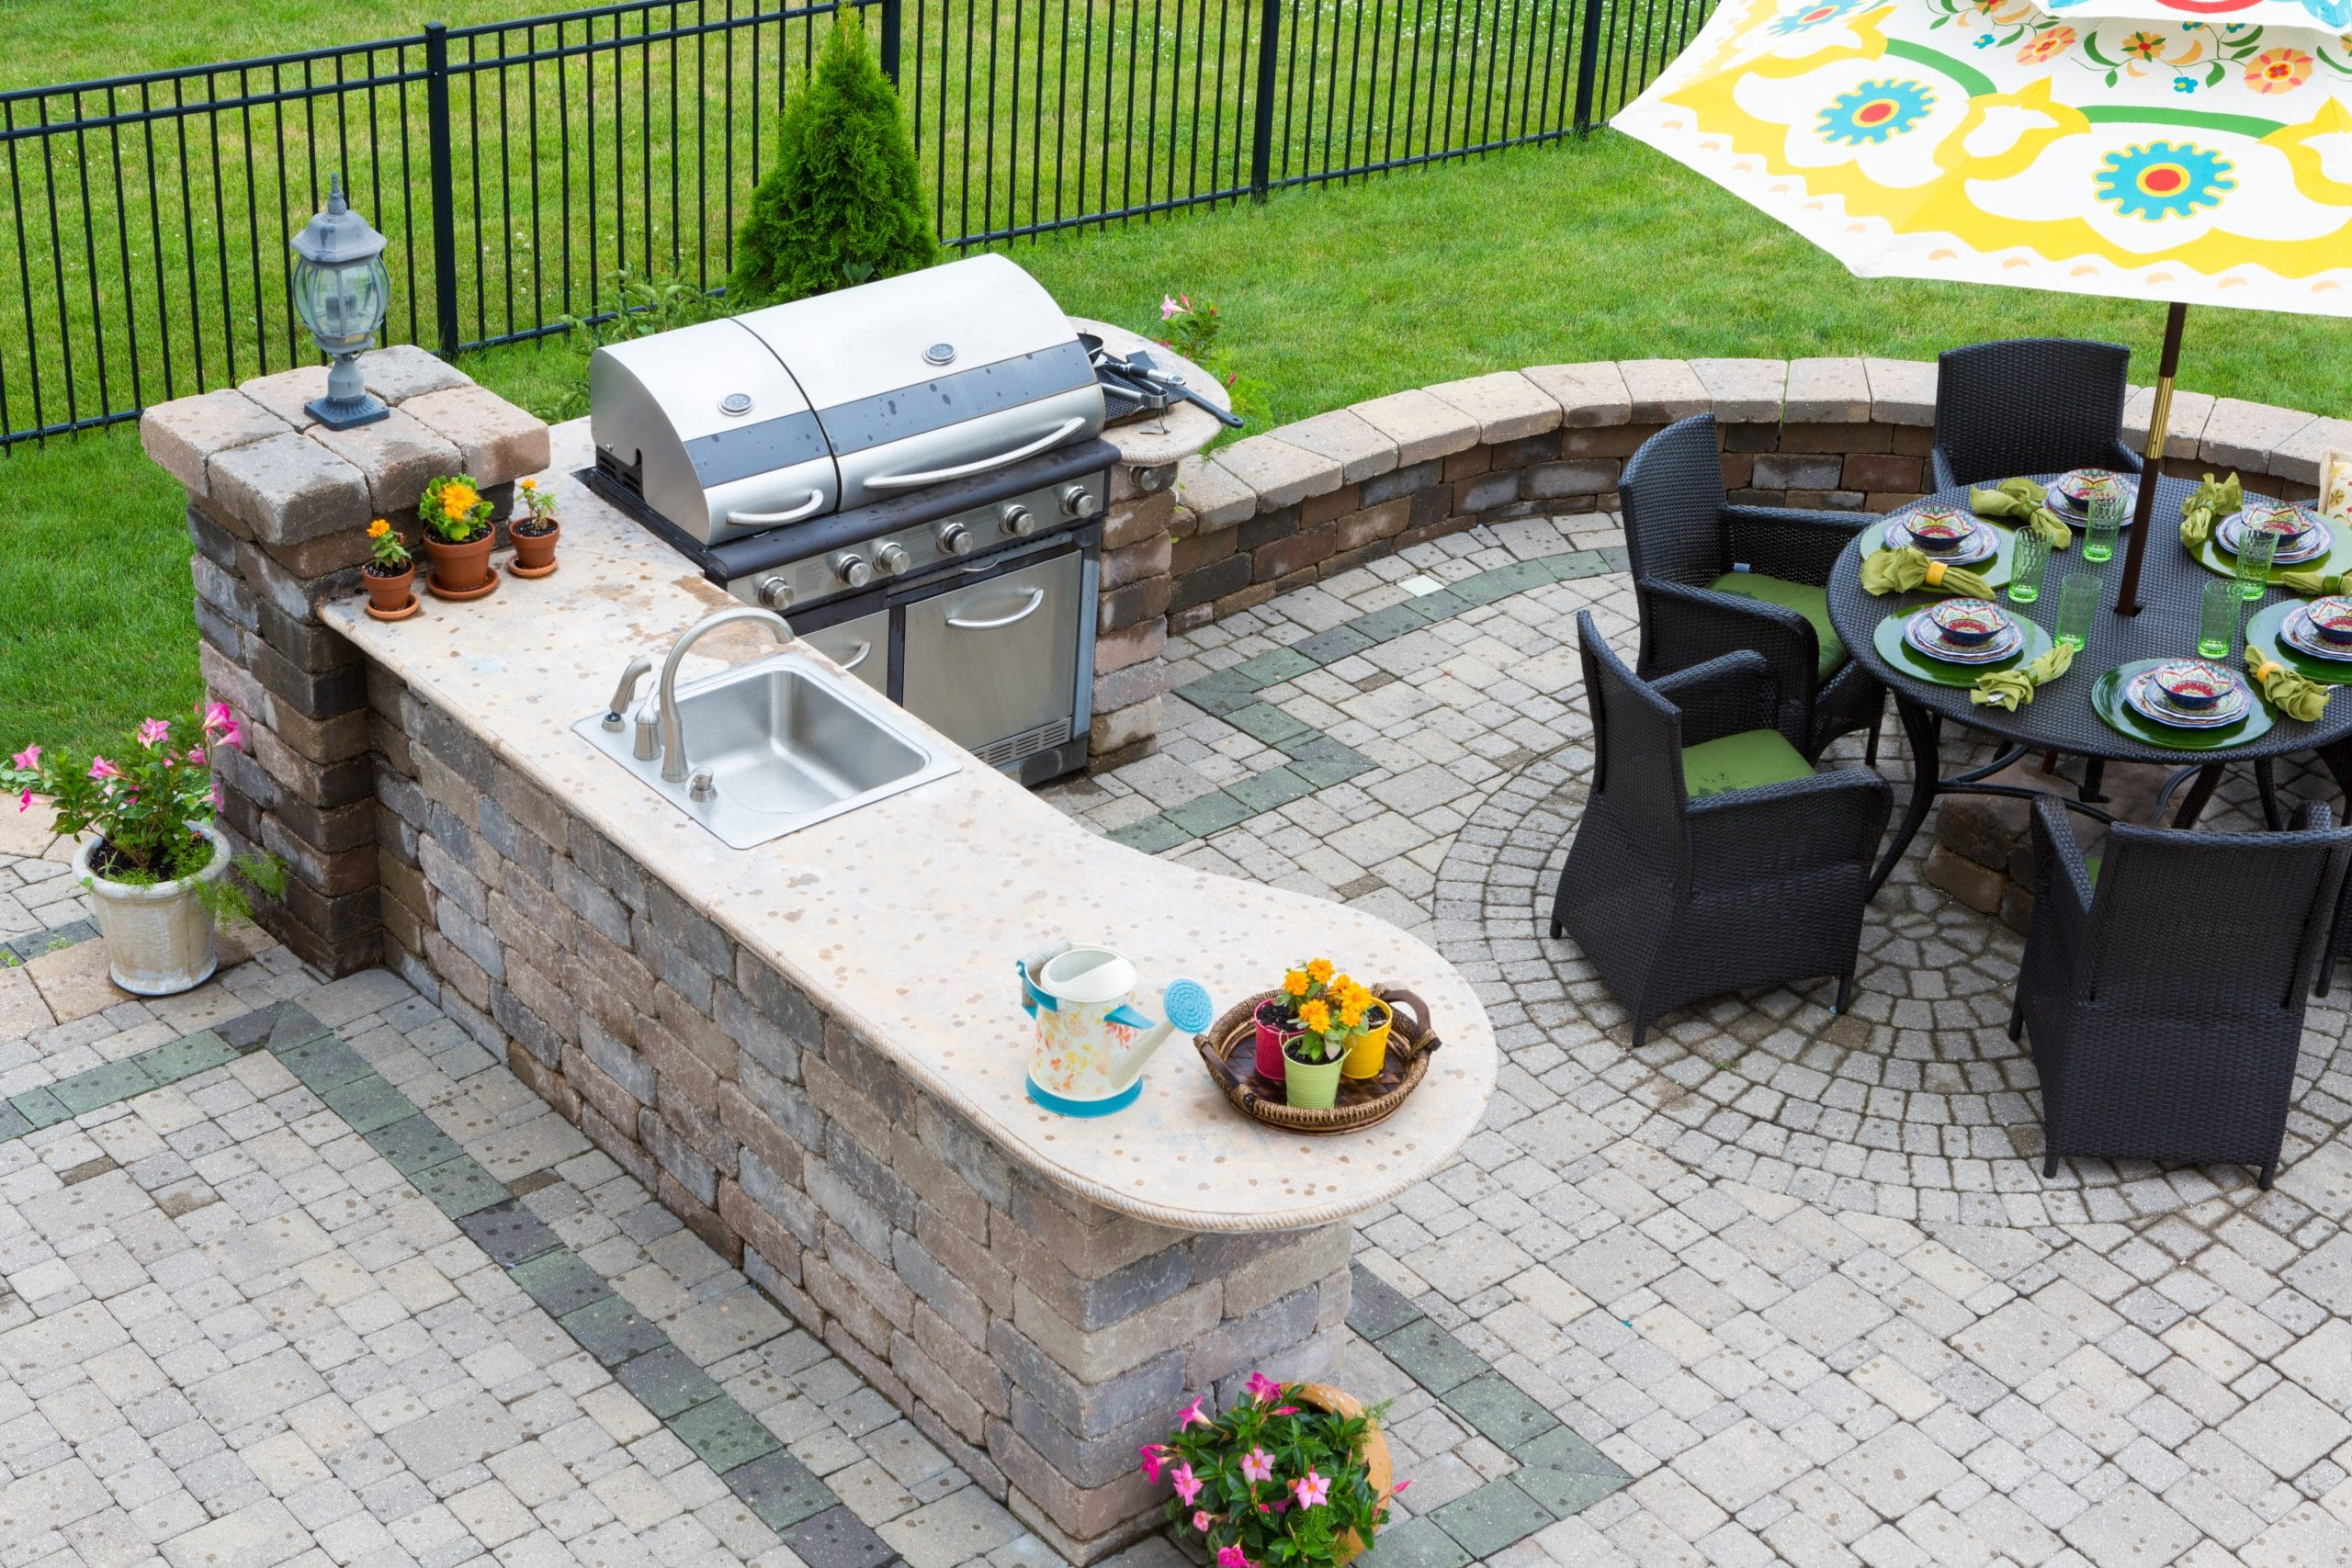 Does an Outdoor Kitchen Add Value to a Home?